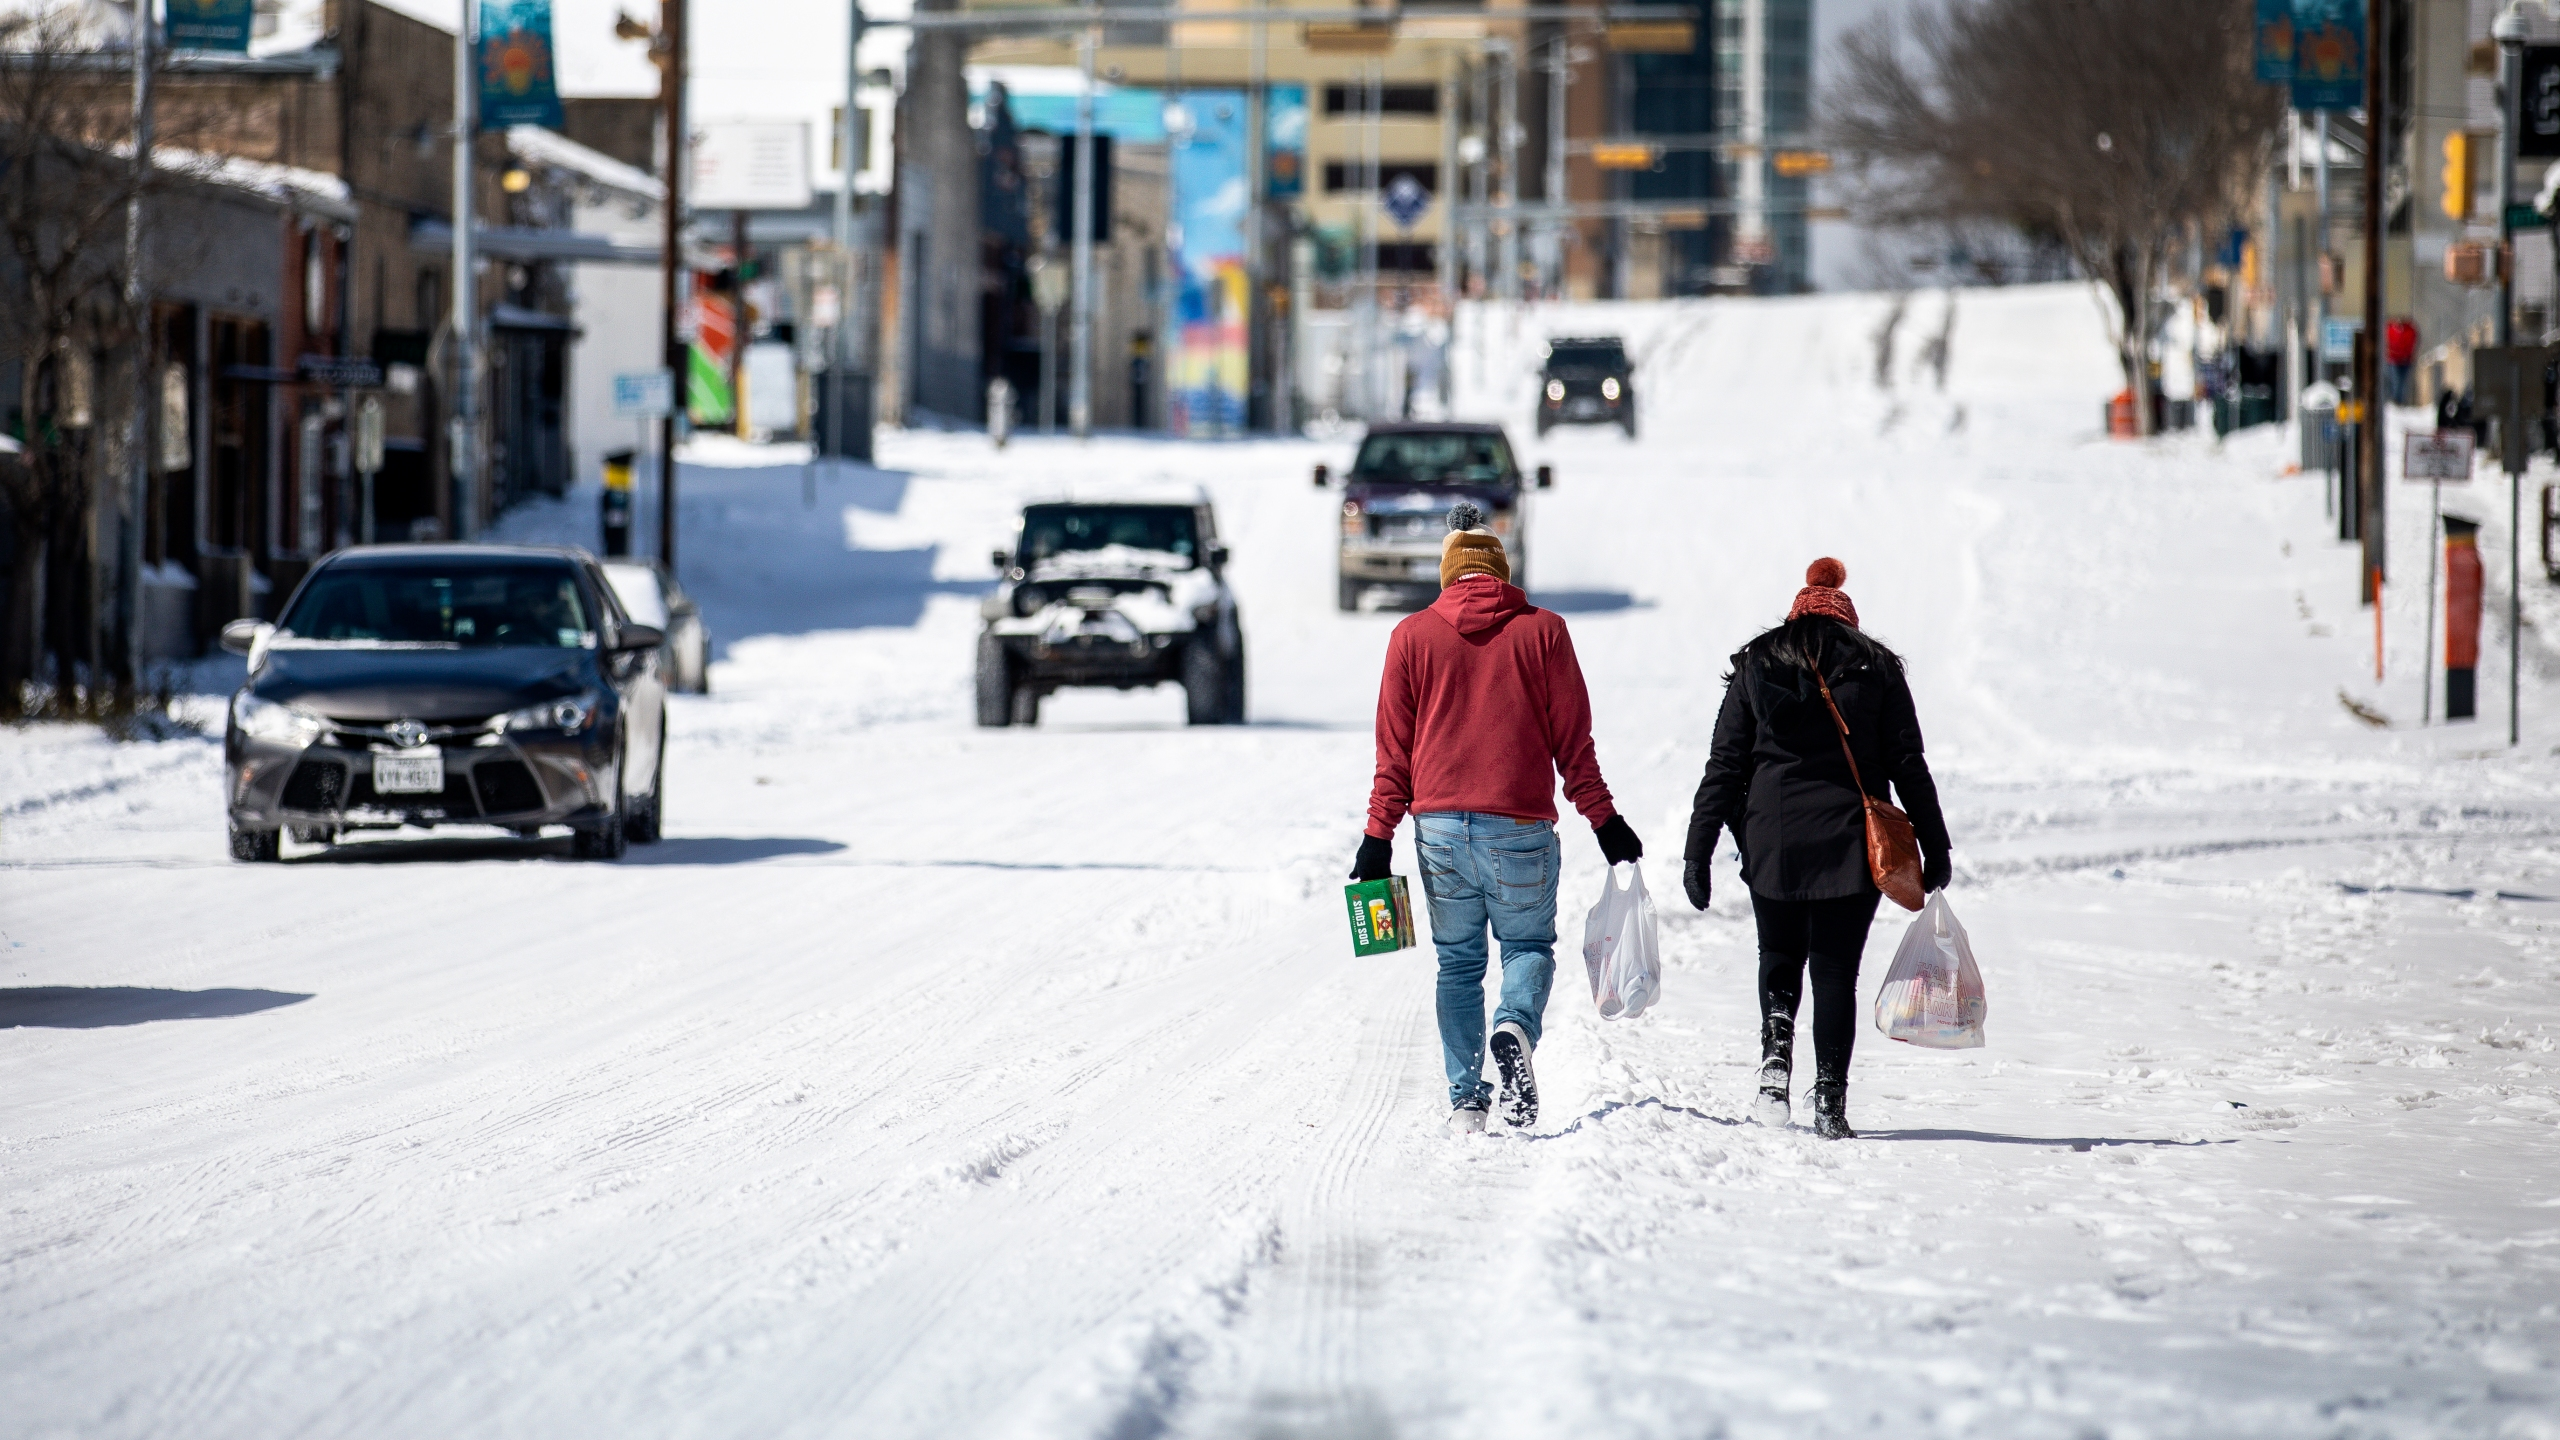 People carry groceries from a local gas station on February 15, 2021 in Austin, Texas. Winter storm Uri has brought historic cold weather to Texas, causing traffic delays and power outages, and storms have swept across 26 states with a mix of freezing temperatures and precipitation. (Photo by Montinique Monroe/Getty Images)